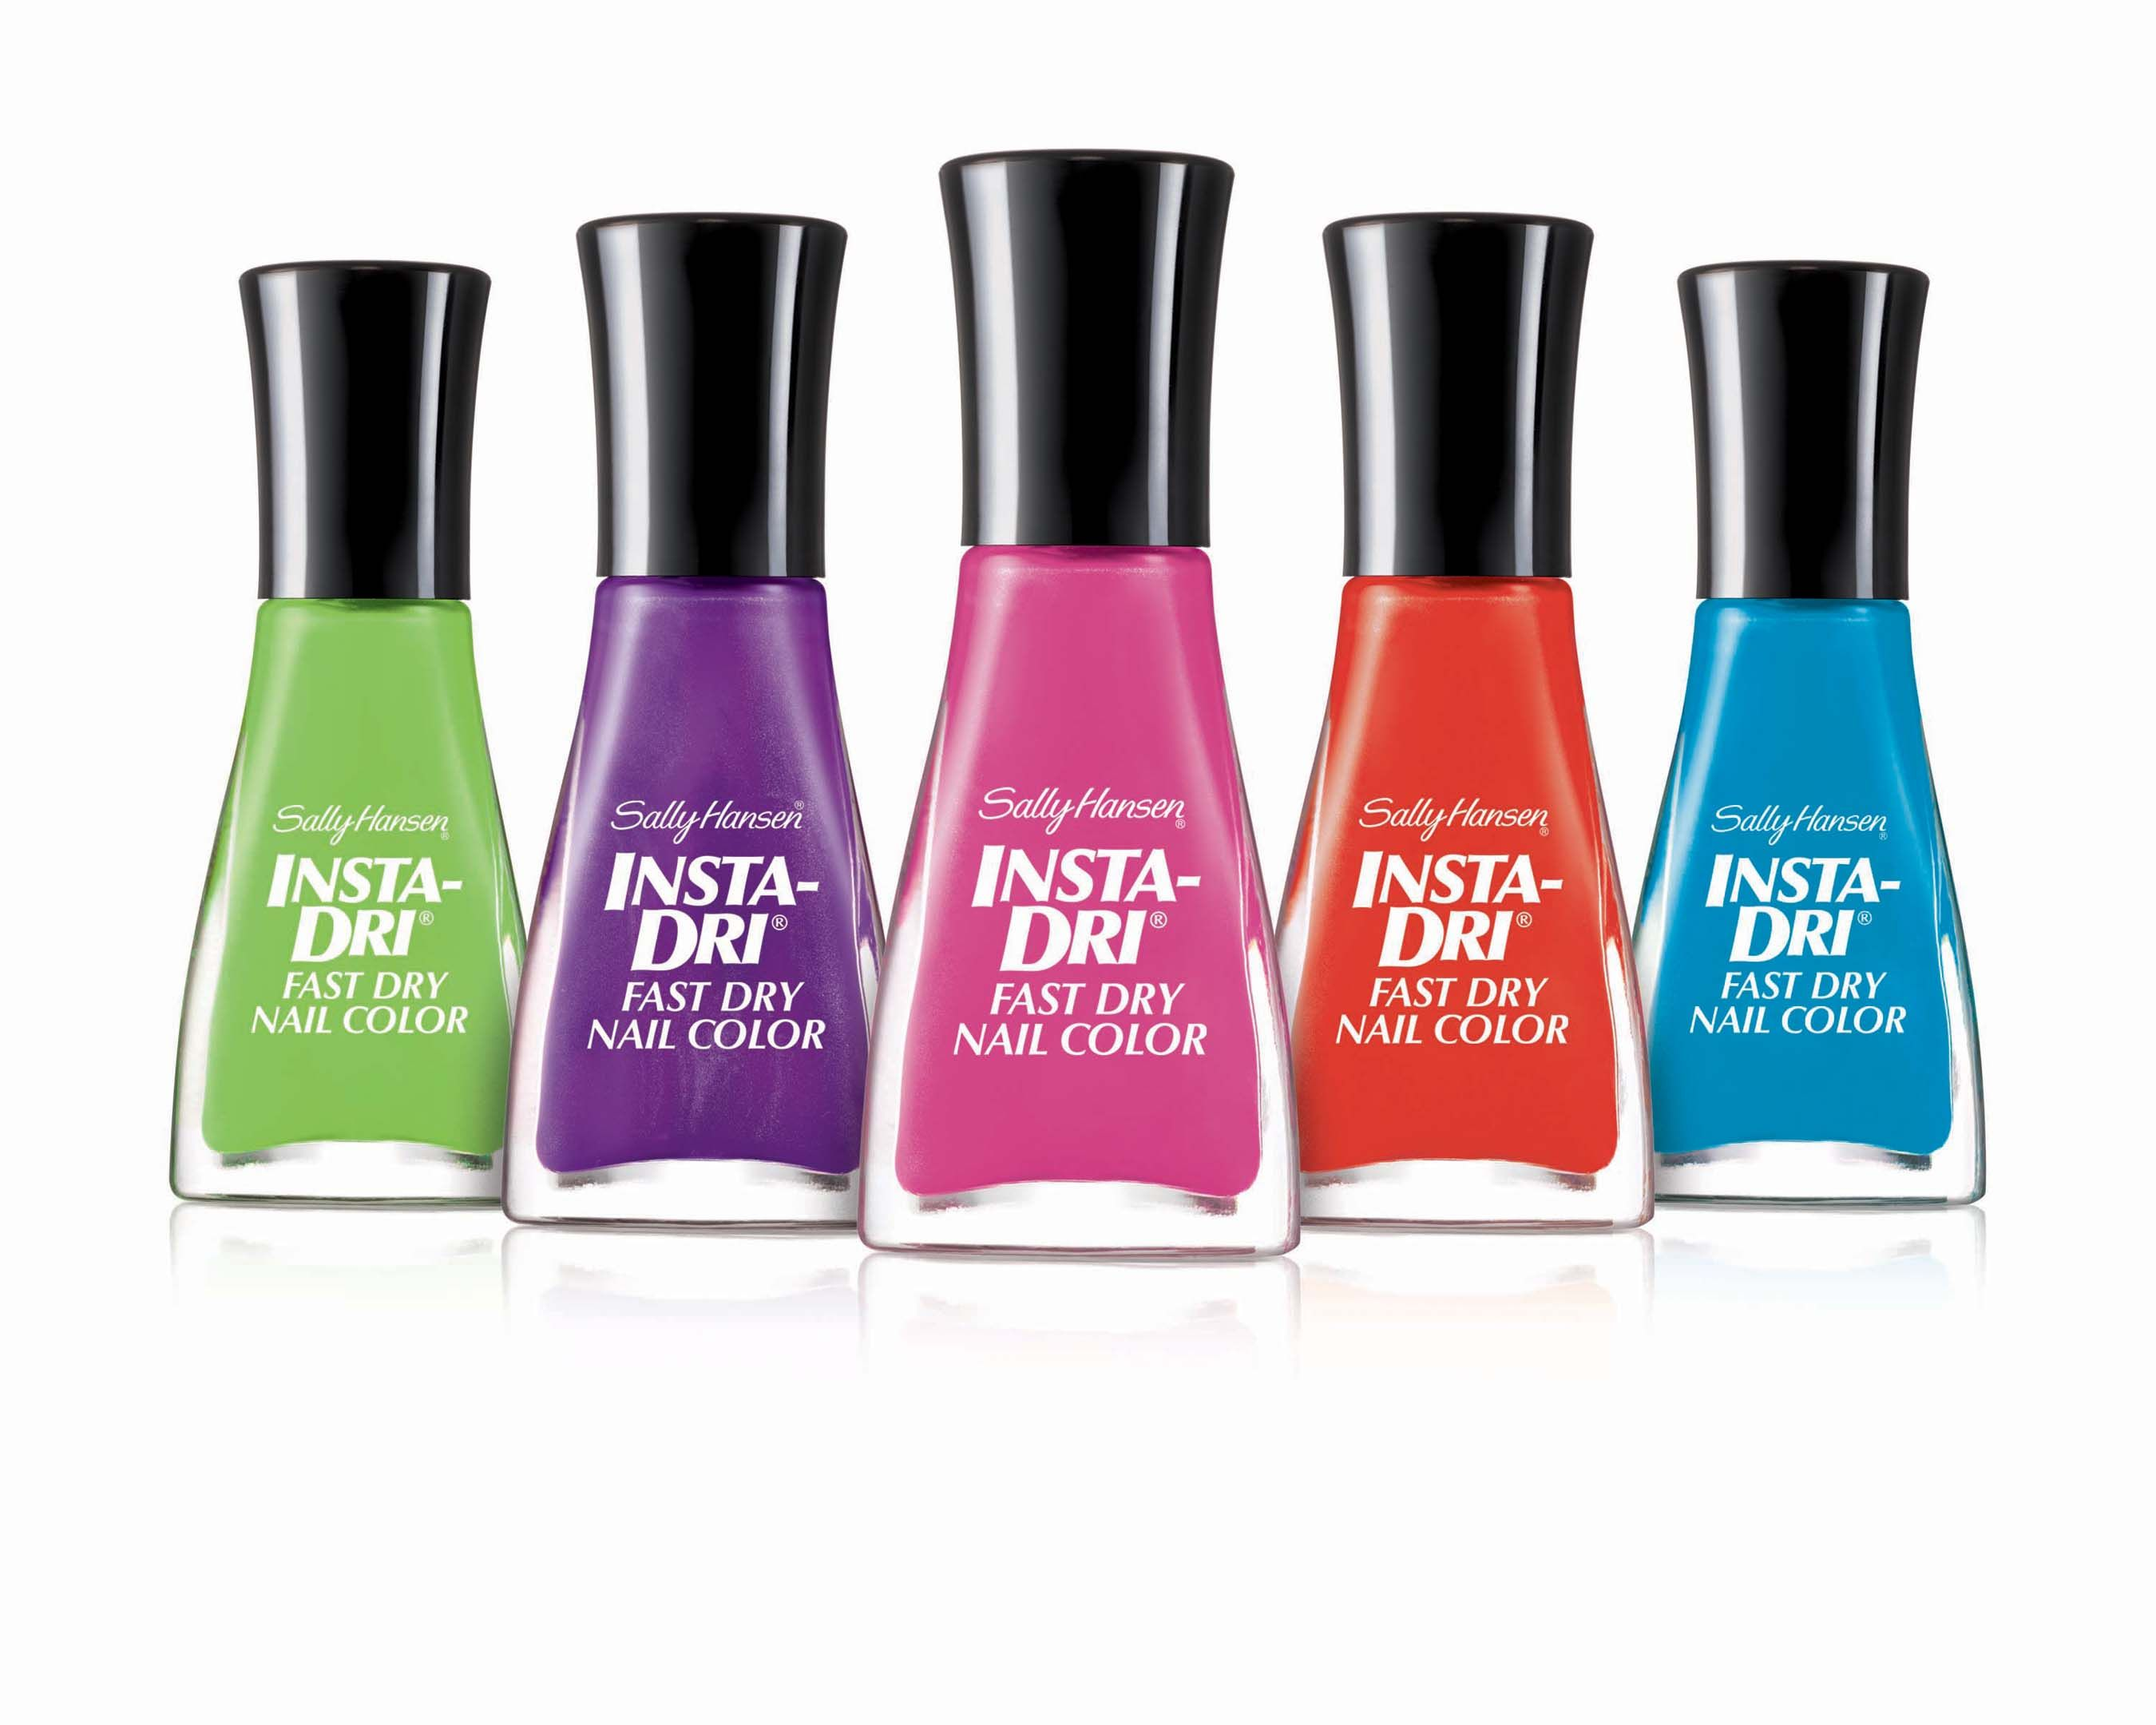 Sally Hansen Insta Dri Nail Polish I Am Obsessed With These Can T Sit Still So Quick Drying Is A Must Are Extremely Easy To Use The